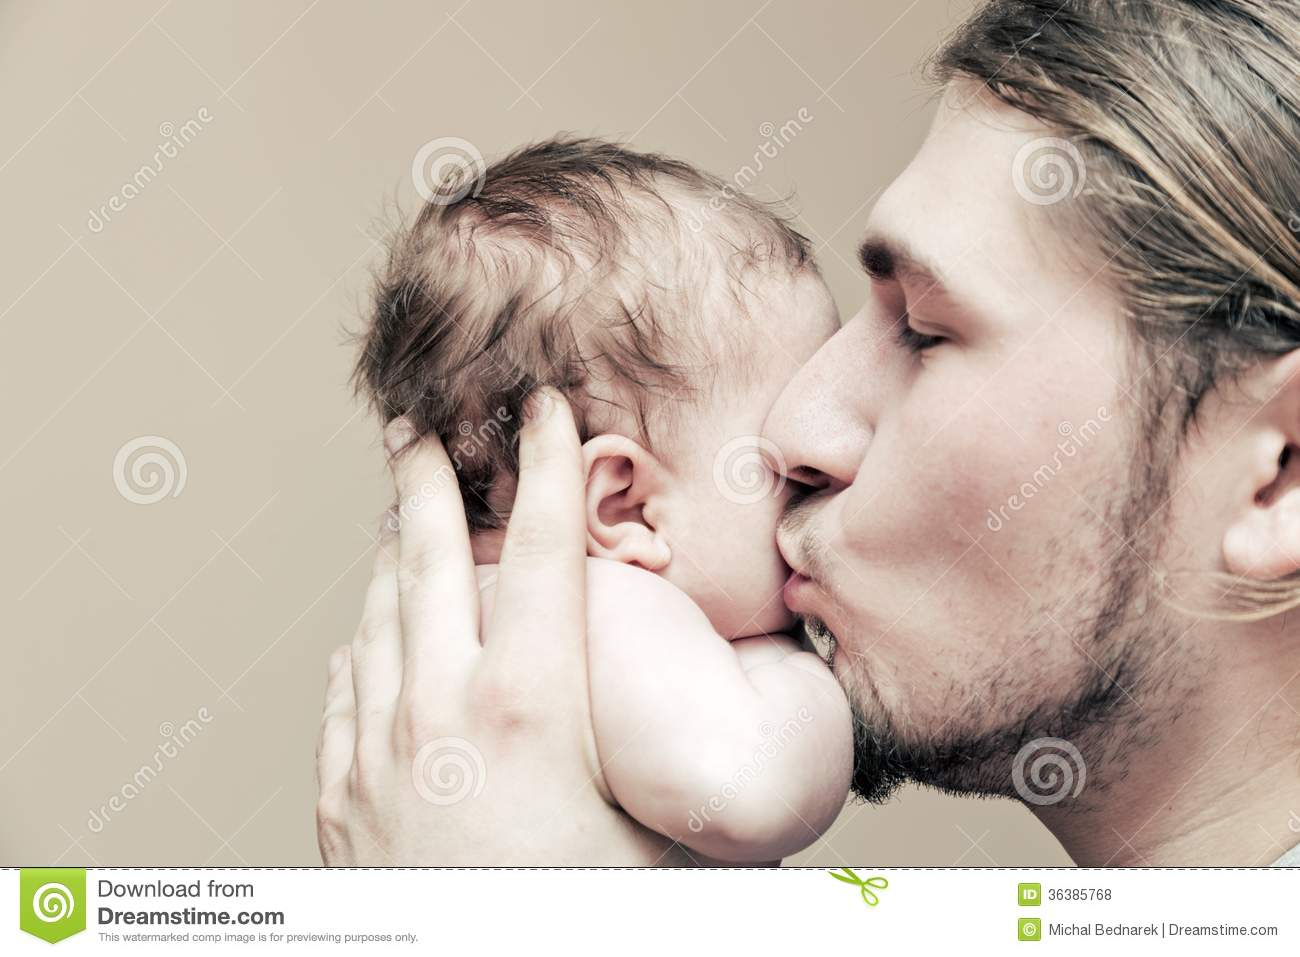 Father with his young baby cuddling and kissing him on cheek